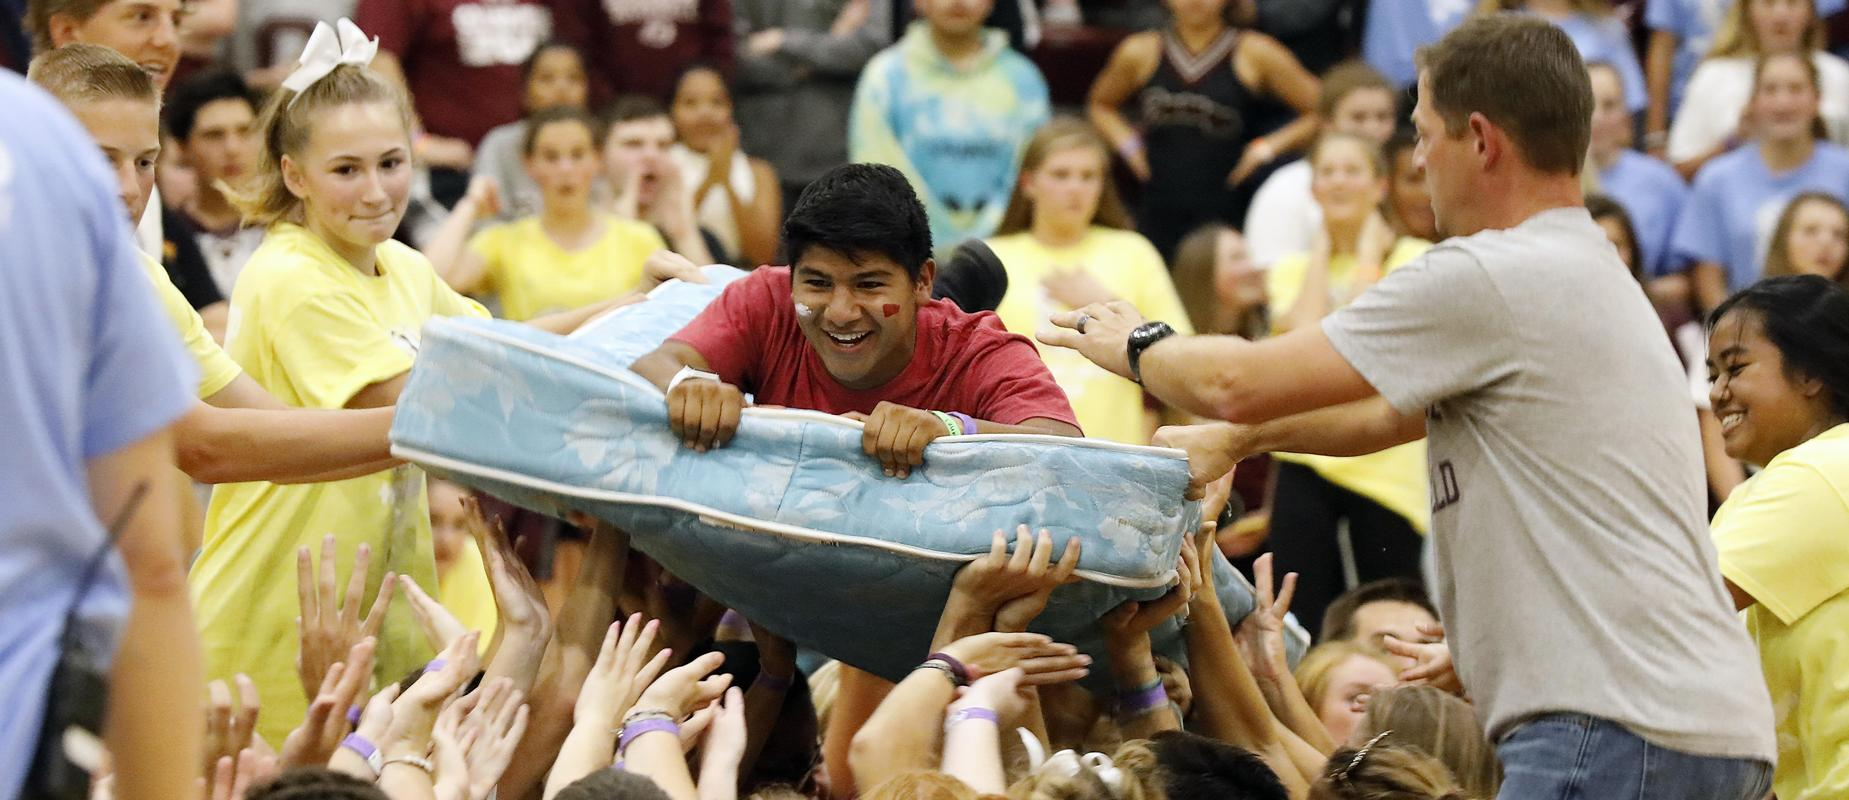 boy in mattress relay floats across gym with help of classmates